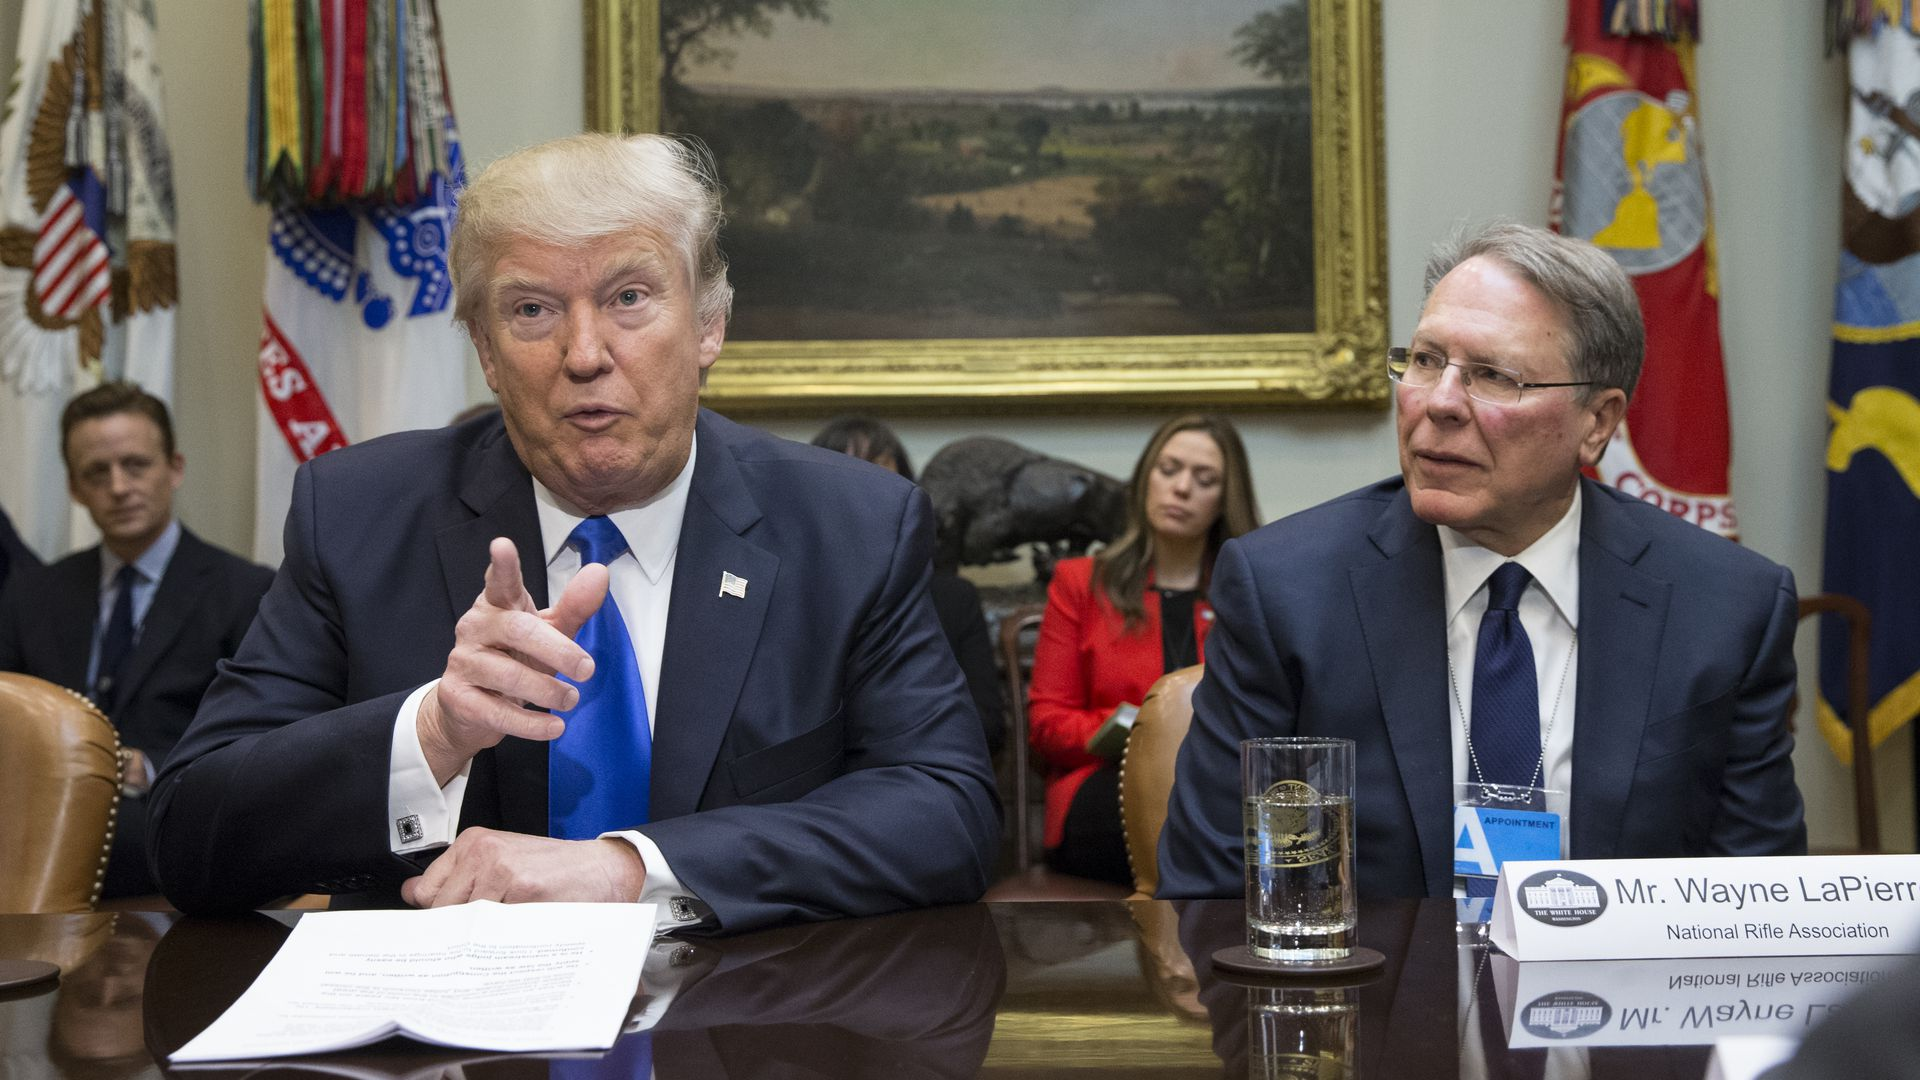 President Donald Trump (L) sits beside Executive Vice President and CEO of the National Rifle Association (NRA) Wayne LaPierre (R)in the Roosevelt Room of the White House on February 1, 2017